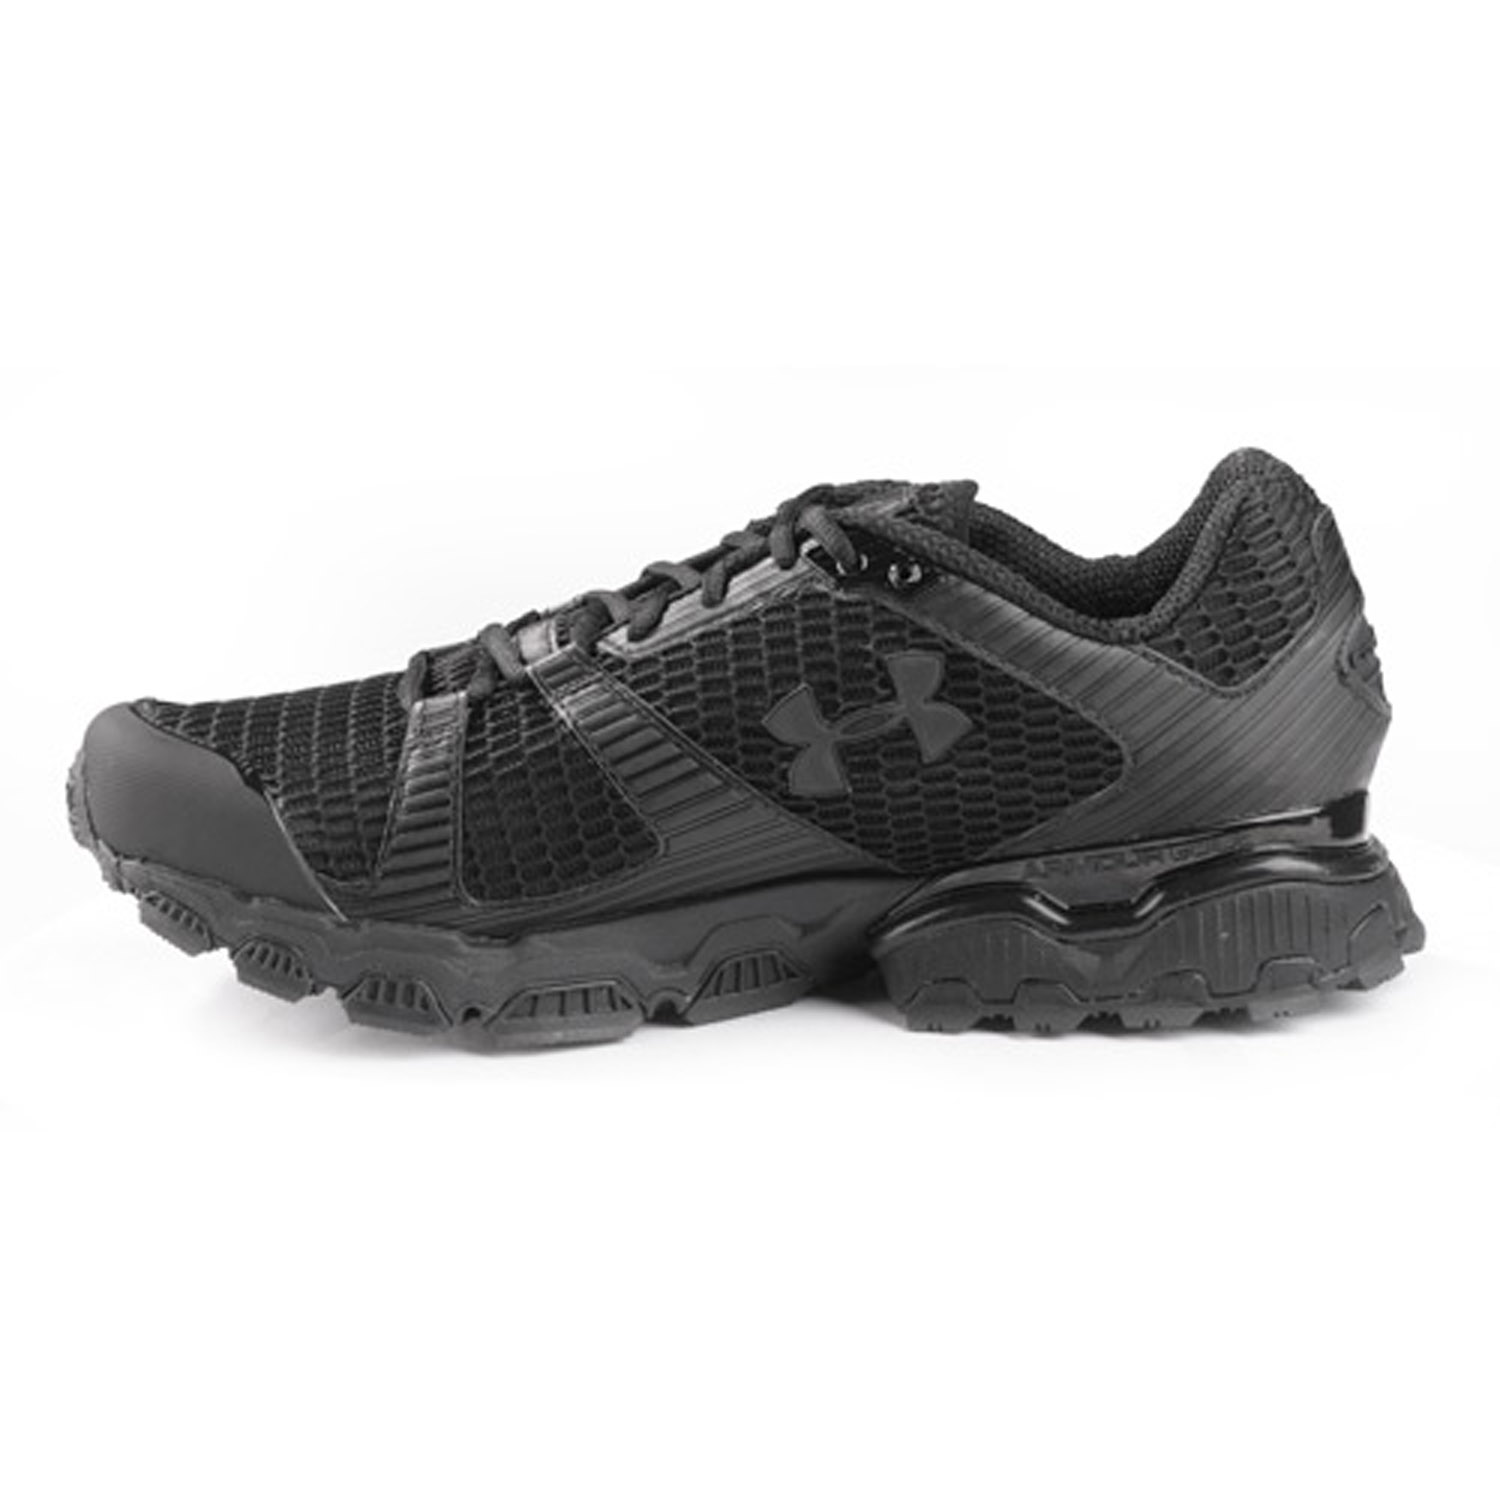 Under Armour Fthr Radiate Shoes - Black/Blaze Orange | Free Delivery